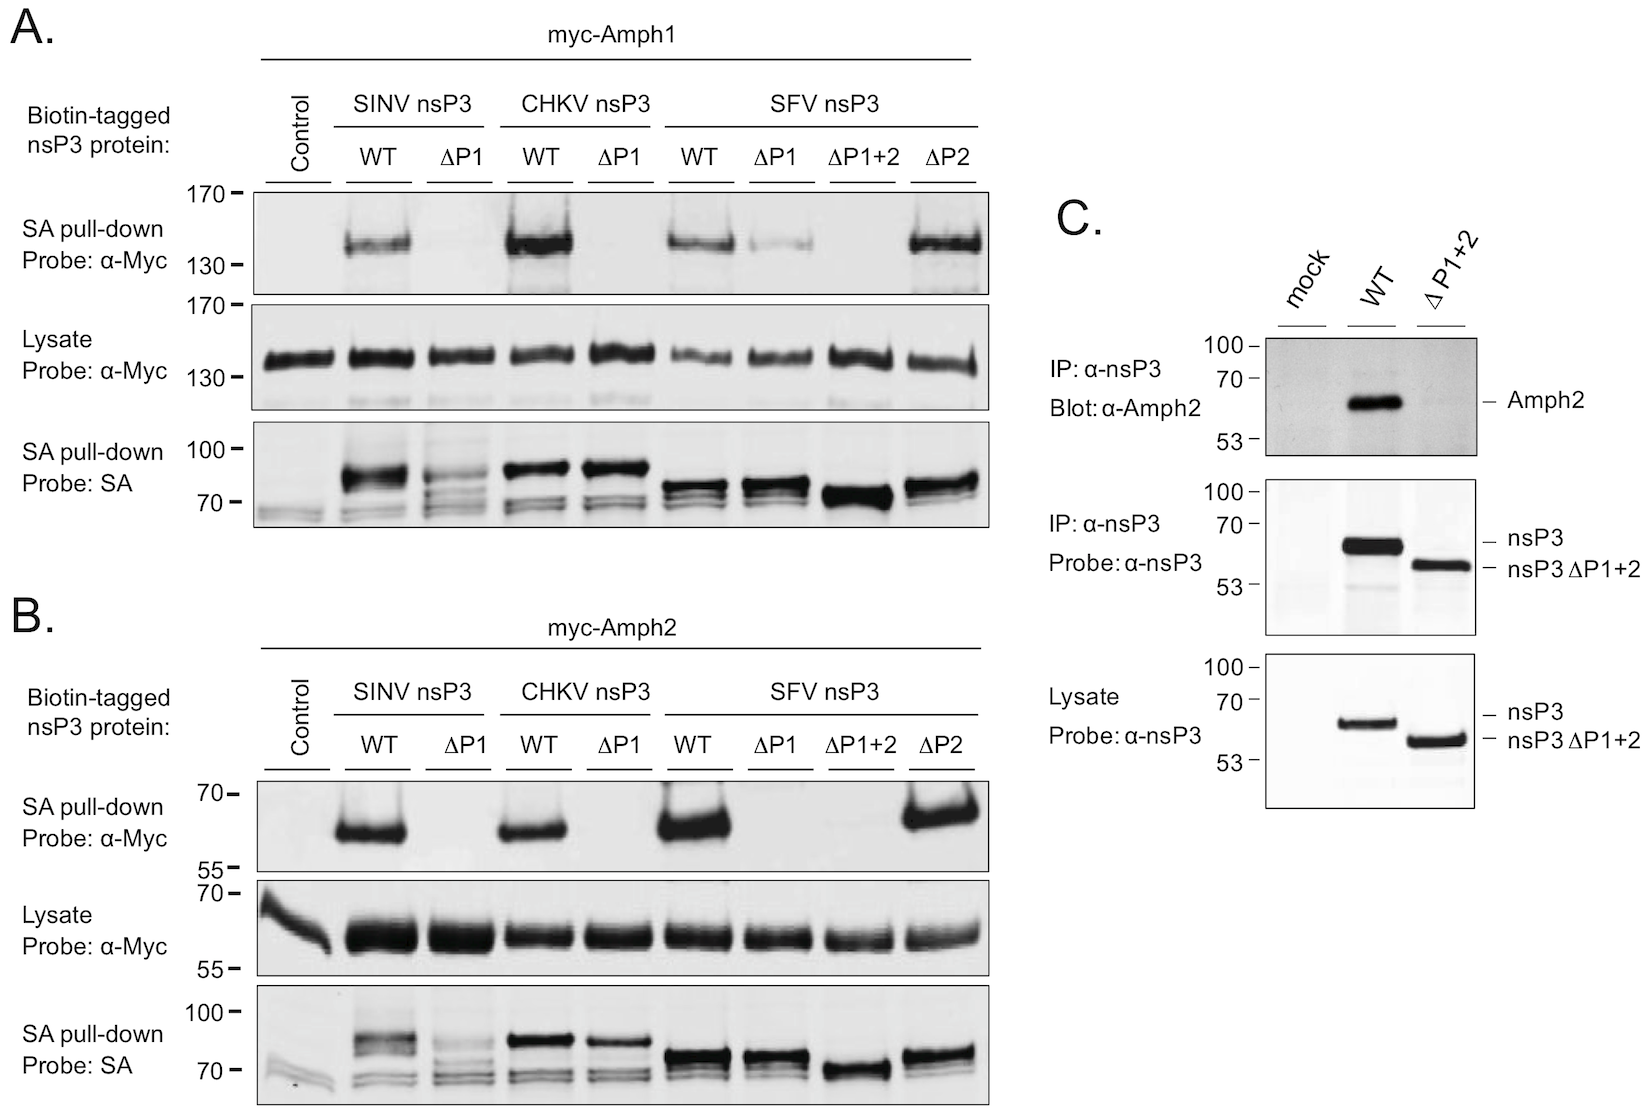 The SH3 binding site of alphaviral nsP3 proteins mediates binding to amphiphysin-1 and -2 proteins in transfected and in infected cells.